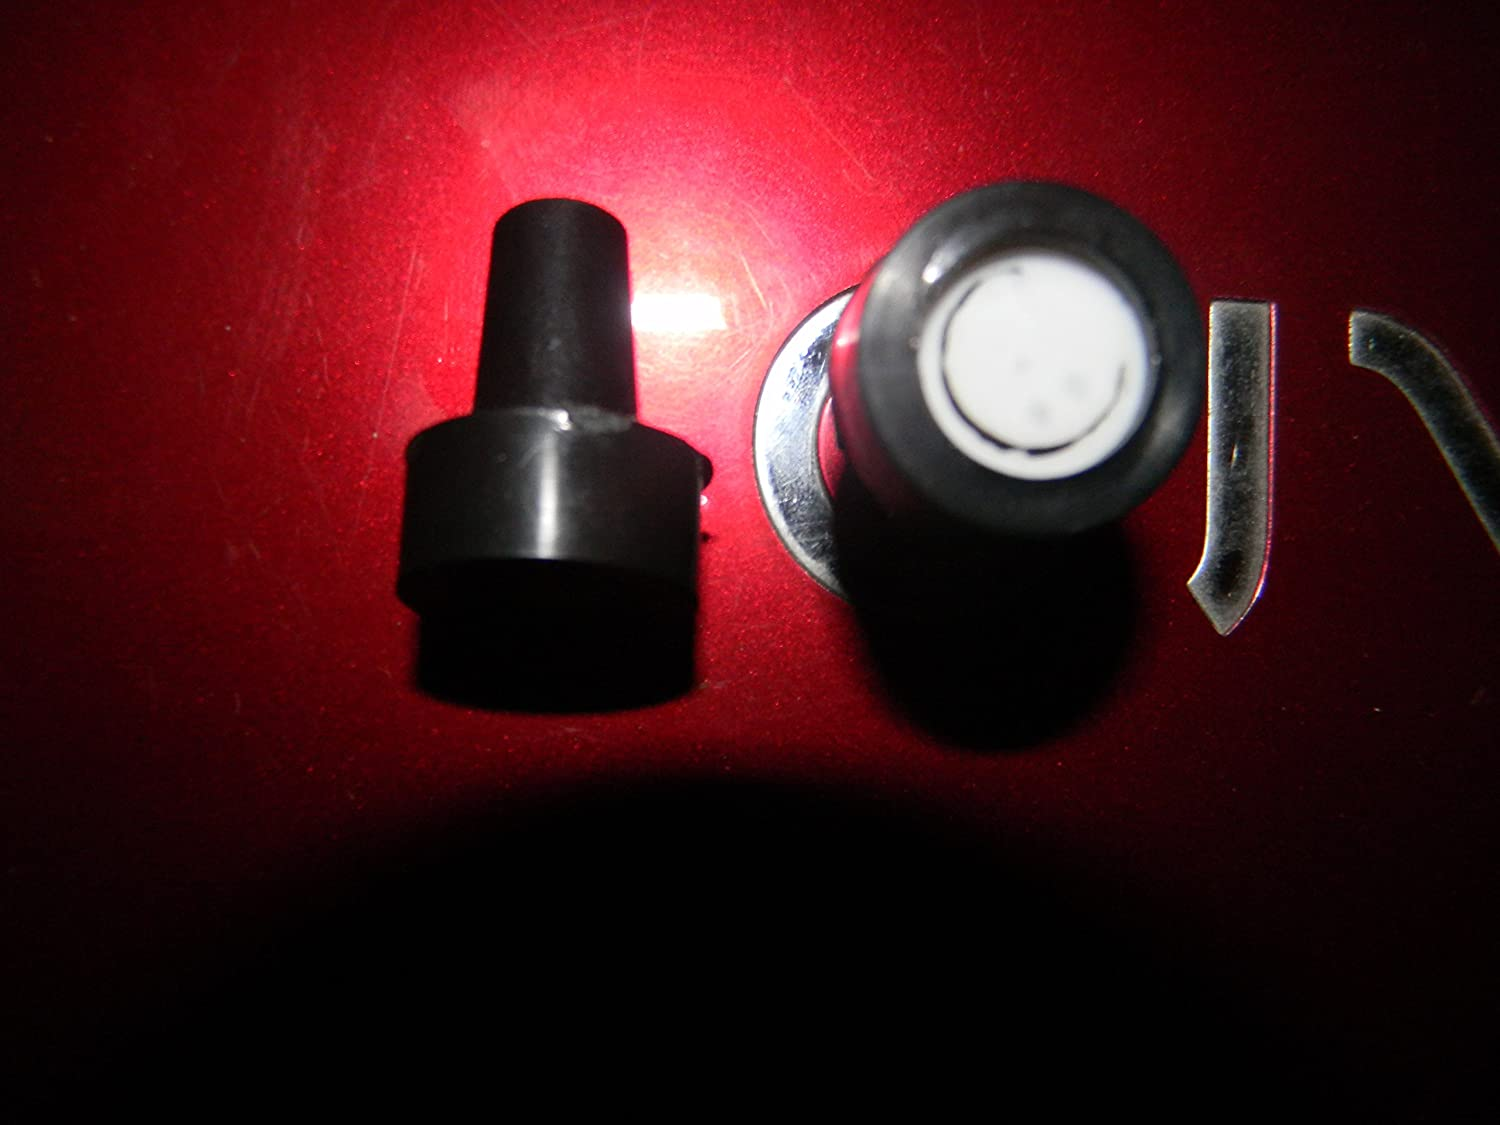 synth/étique Highland Cornemuse Valve///écossais Cornemuse Valve//valve 2/pi/èces